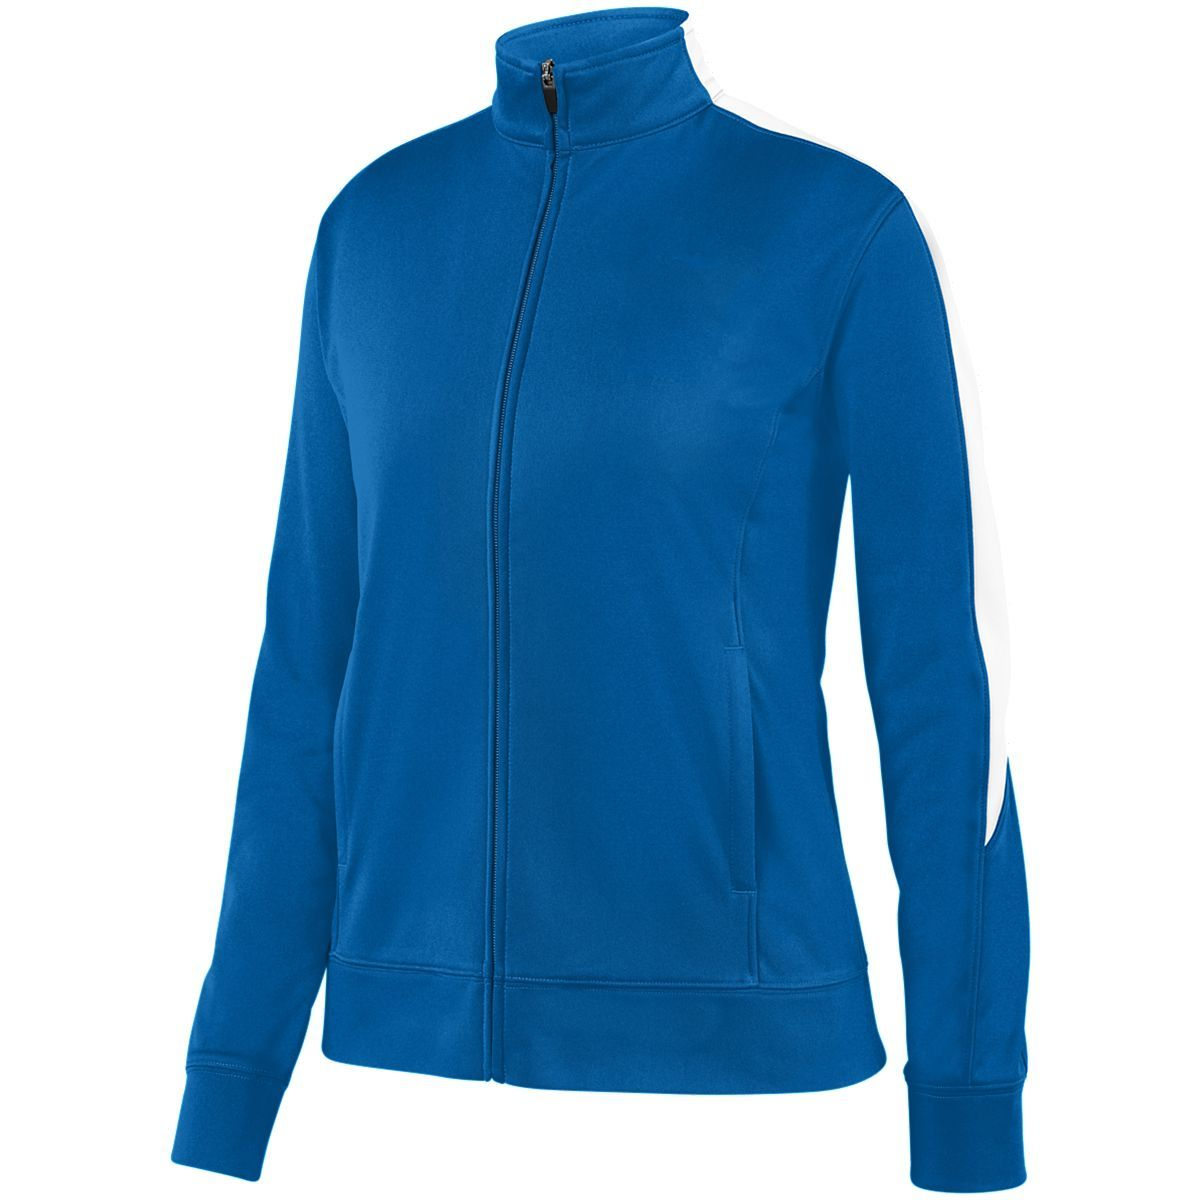 Ladies Medalist Jacket 2.0 - ROYAL/WHITE